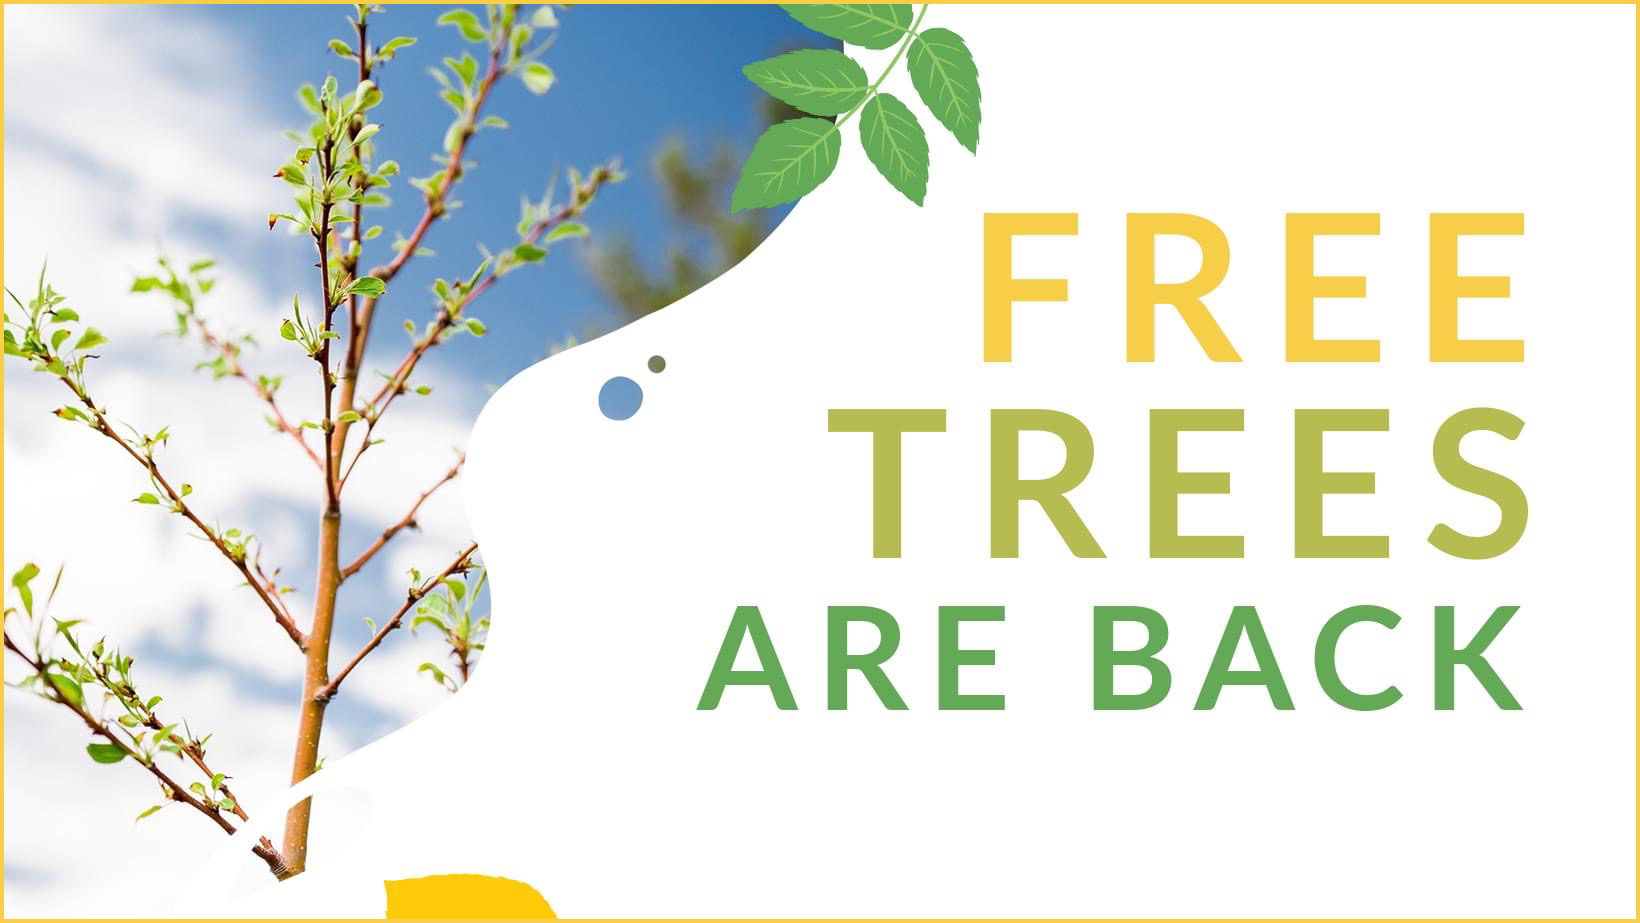 Free Trees are back